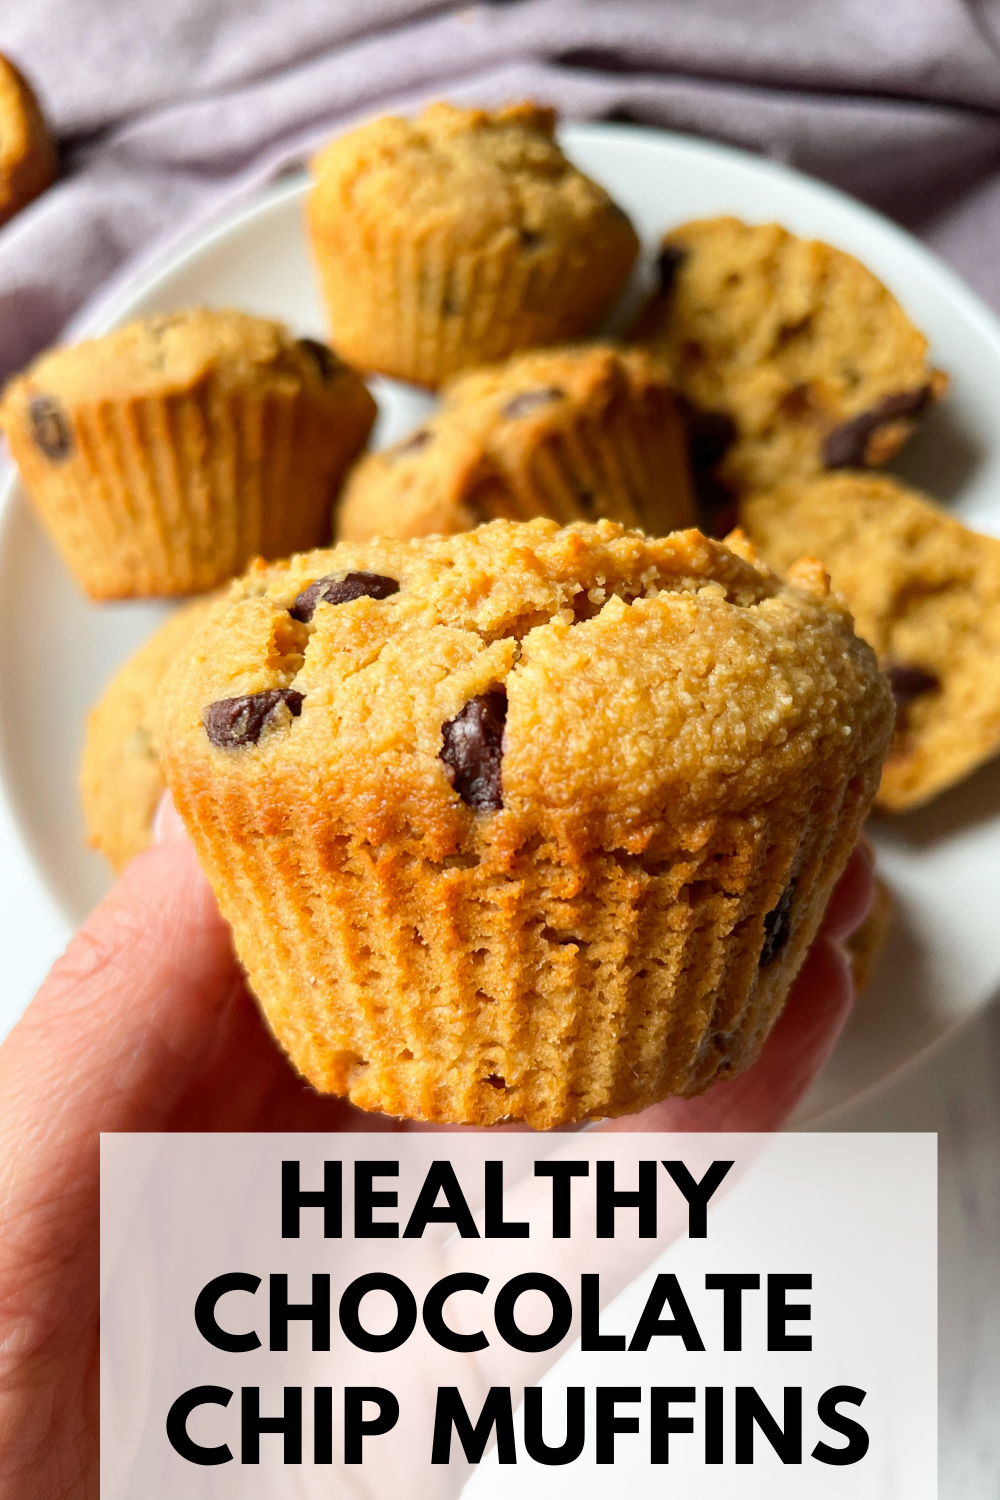 hand holding chocolate chip muffin with text overlay